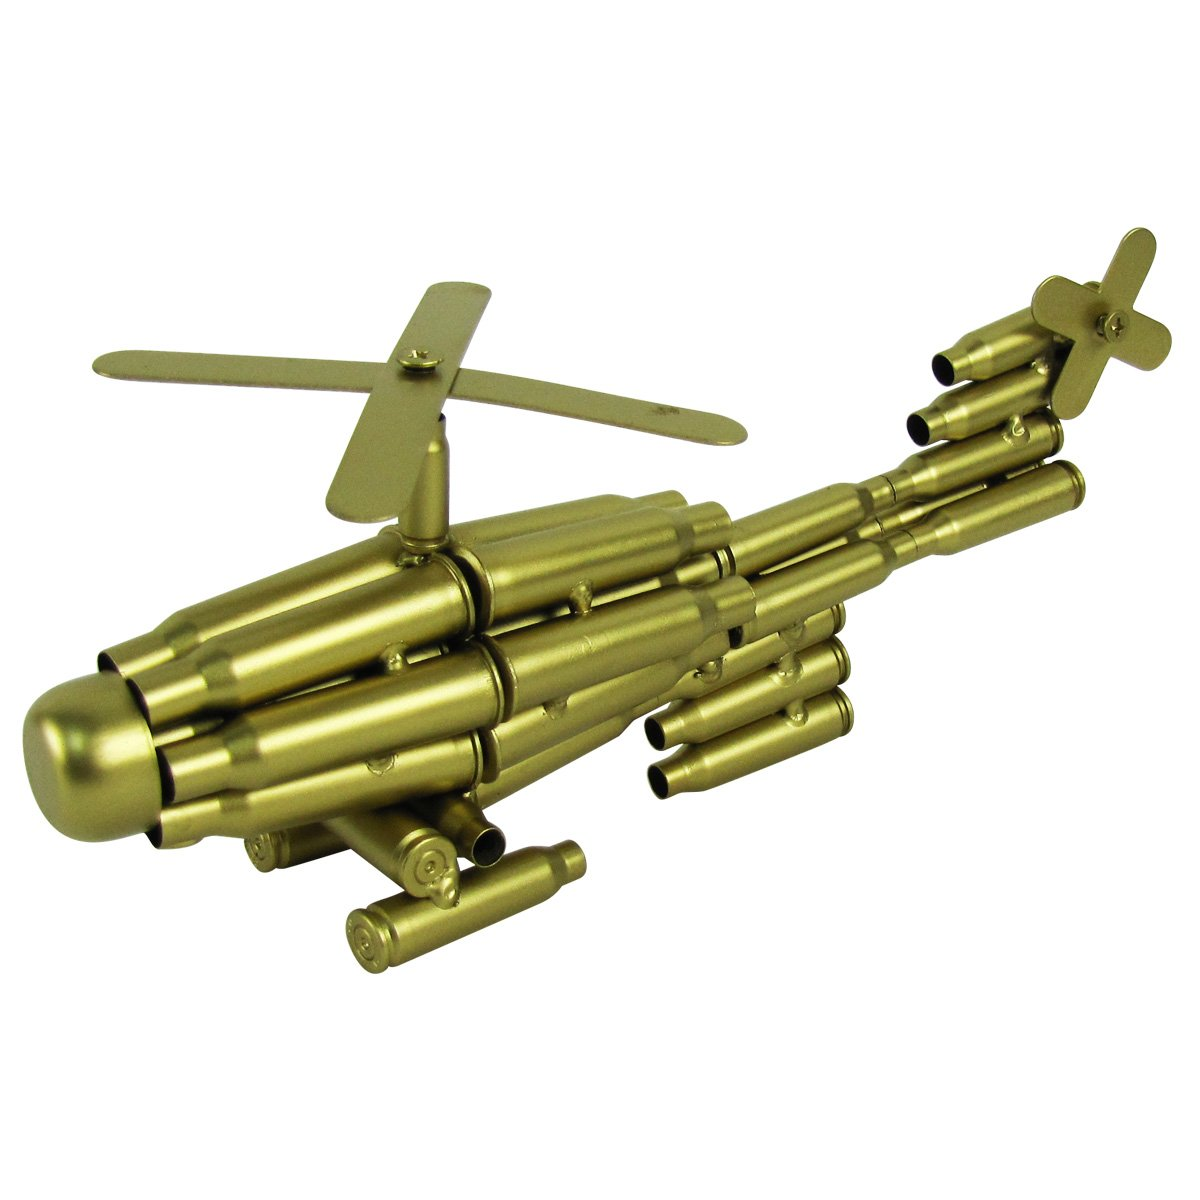 Bullet Shell Casing Shaped Helicopter Military Gift Chopper Gun Casings Shells by TG,LLC